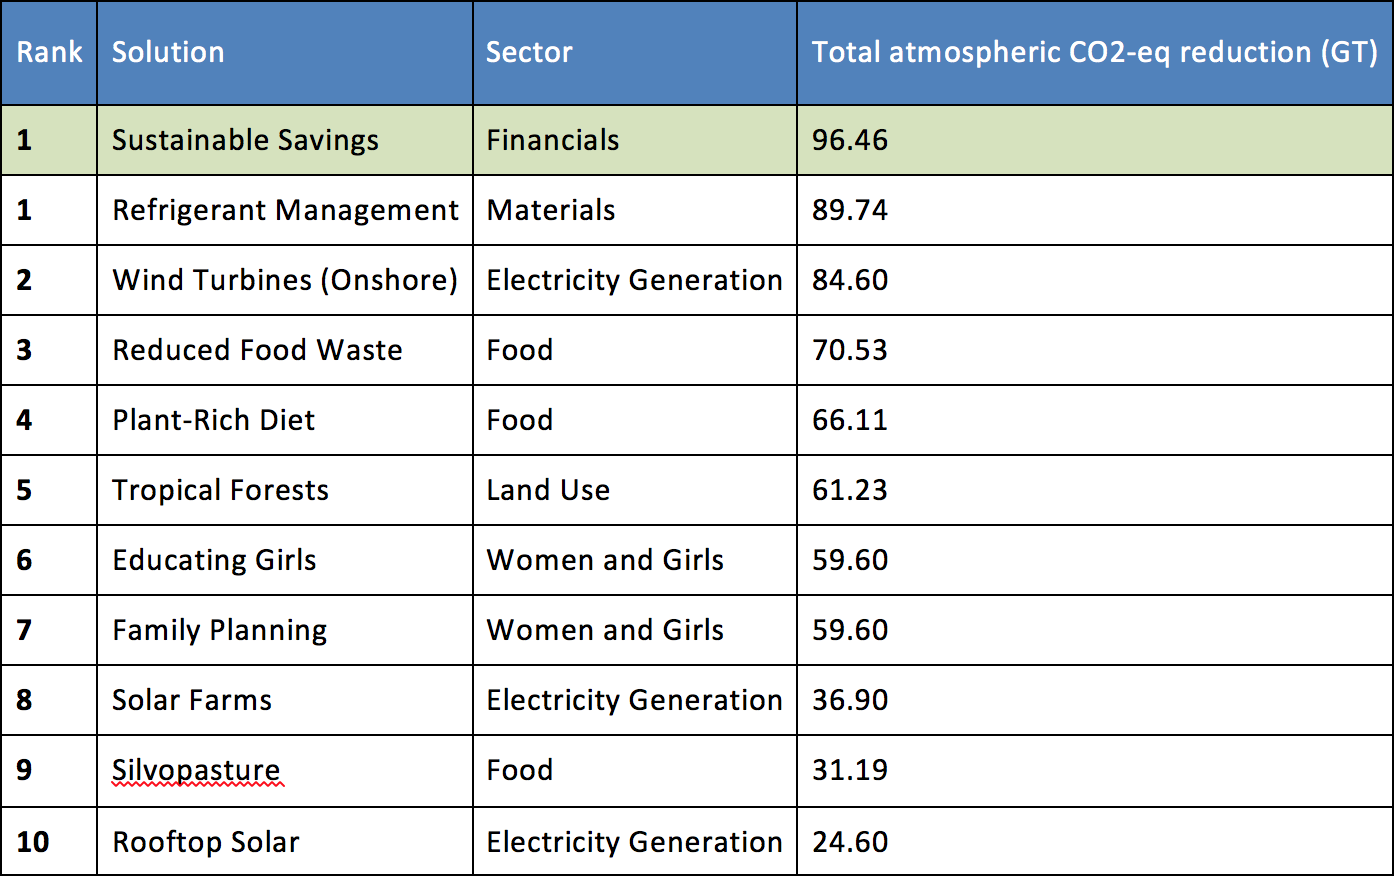 Table of top 10 draw down actions plus sustainable savings at the top